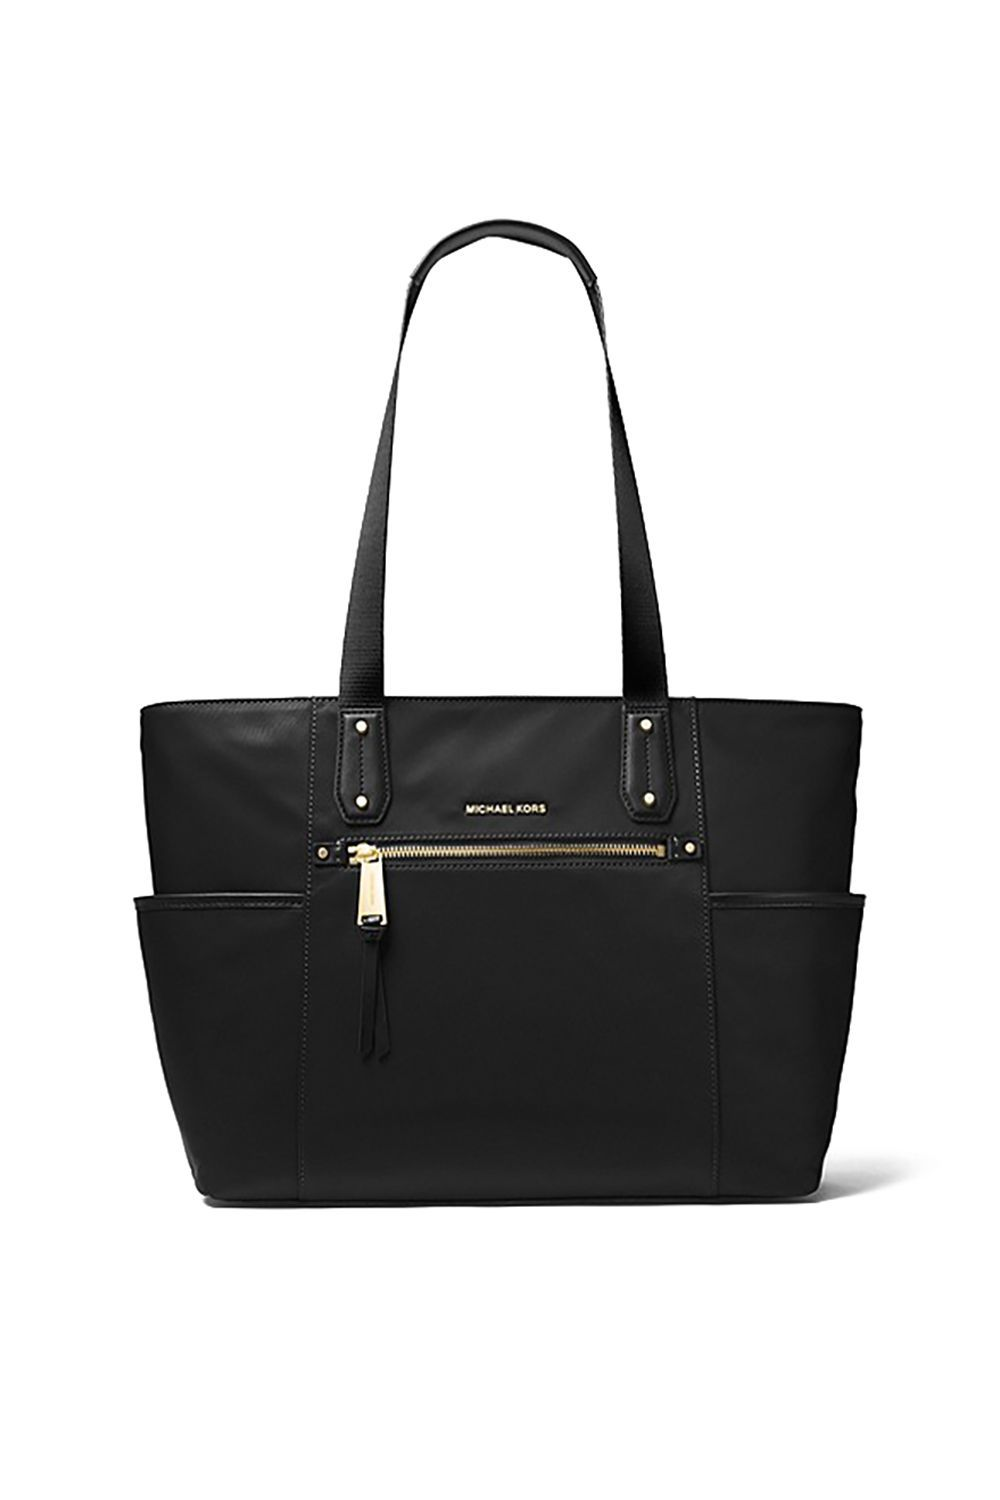 A Real Stand-Up Tote MICHAEL Michael Kors Michael Kors $178.00 SHOP IT For a classic business feel, this Michael Kors nylon tote comes with convenient side pockets for all your essentials—phone, ID card, latest book club read —and won't lose its shape when you set it down underneath your desk.